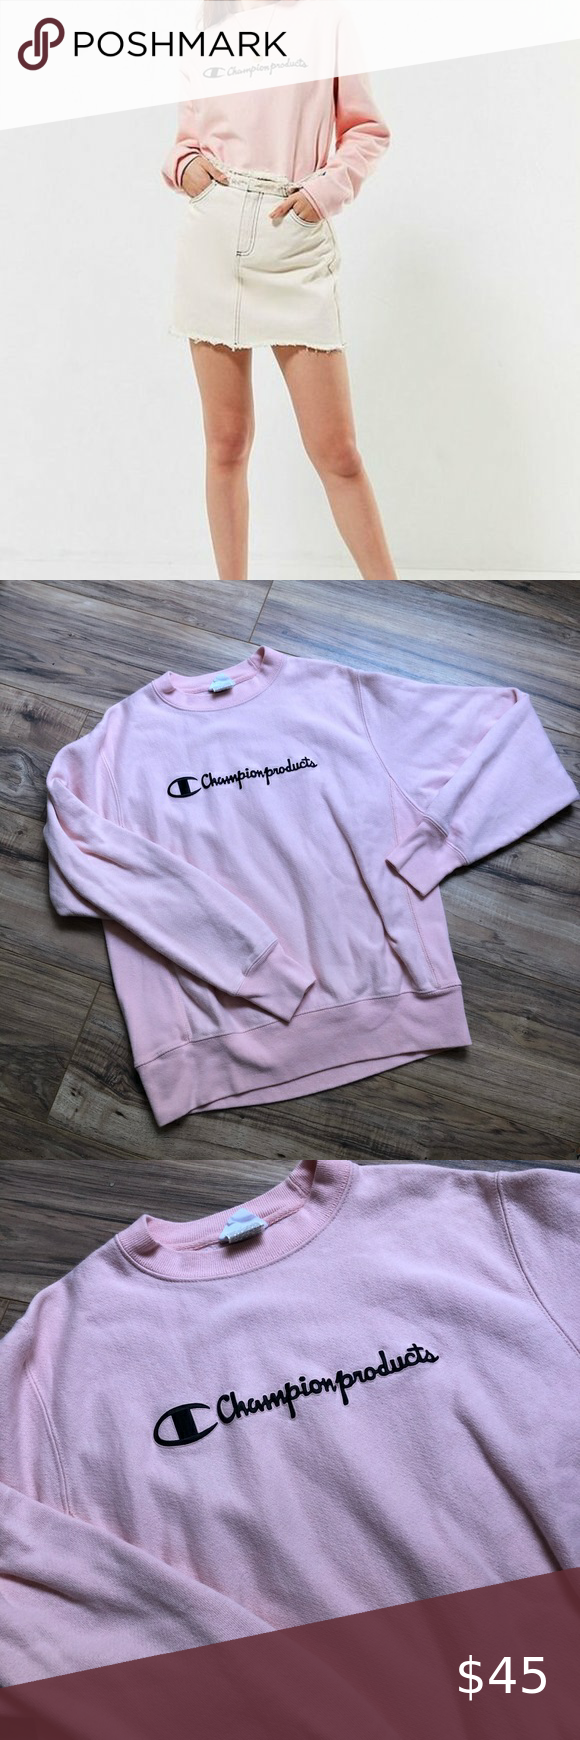 Champion X Uo Urban Outfitters Product Sweatshirt Champion Uo Products Sweatshirt Gorgeous Pale Pink Color Clos Sweatshirts Pink Sweatshirt Urban Outfitters [ 1740 x 580 Pixel ]